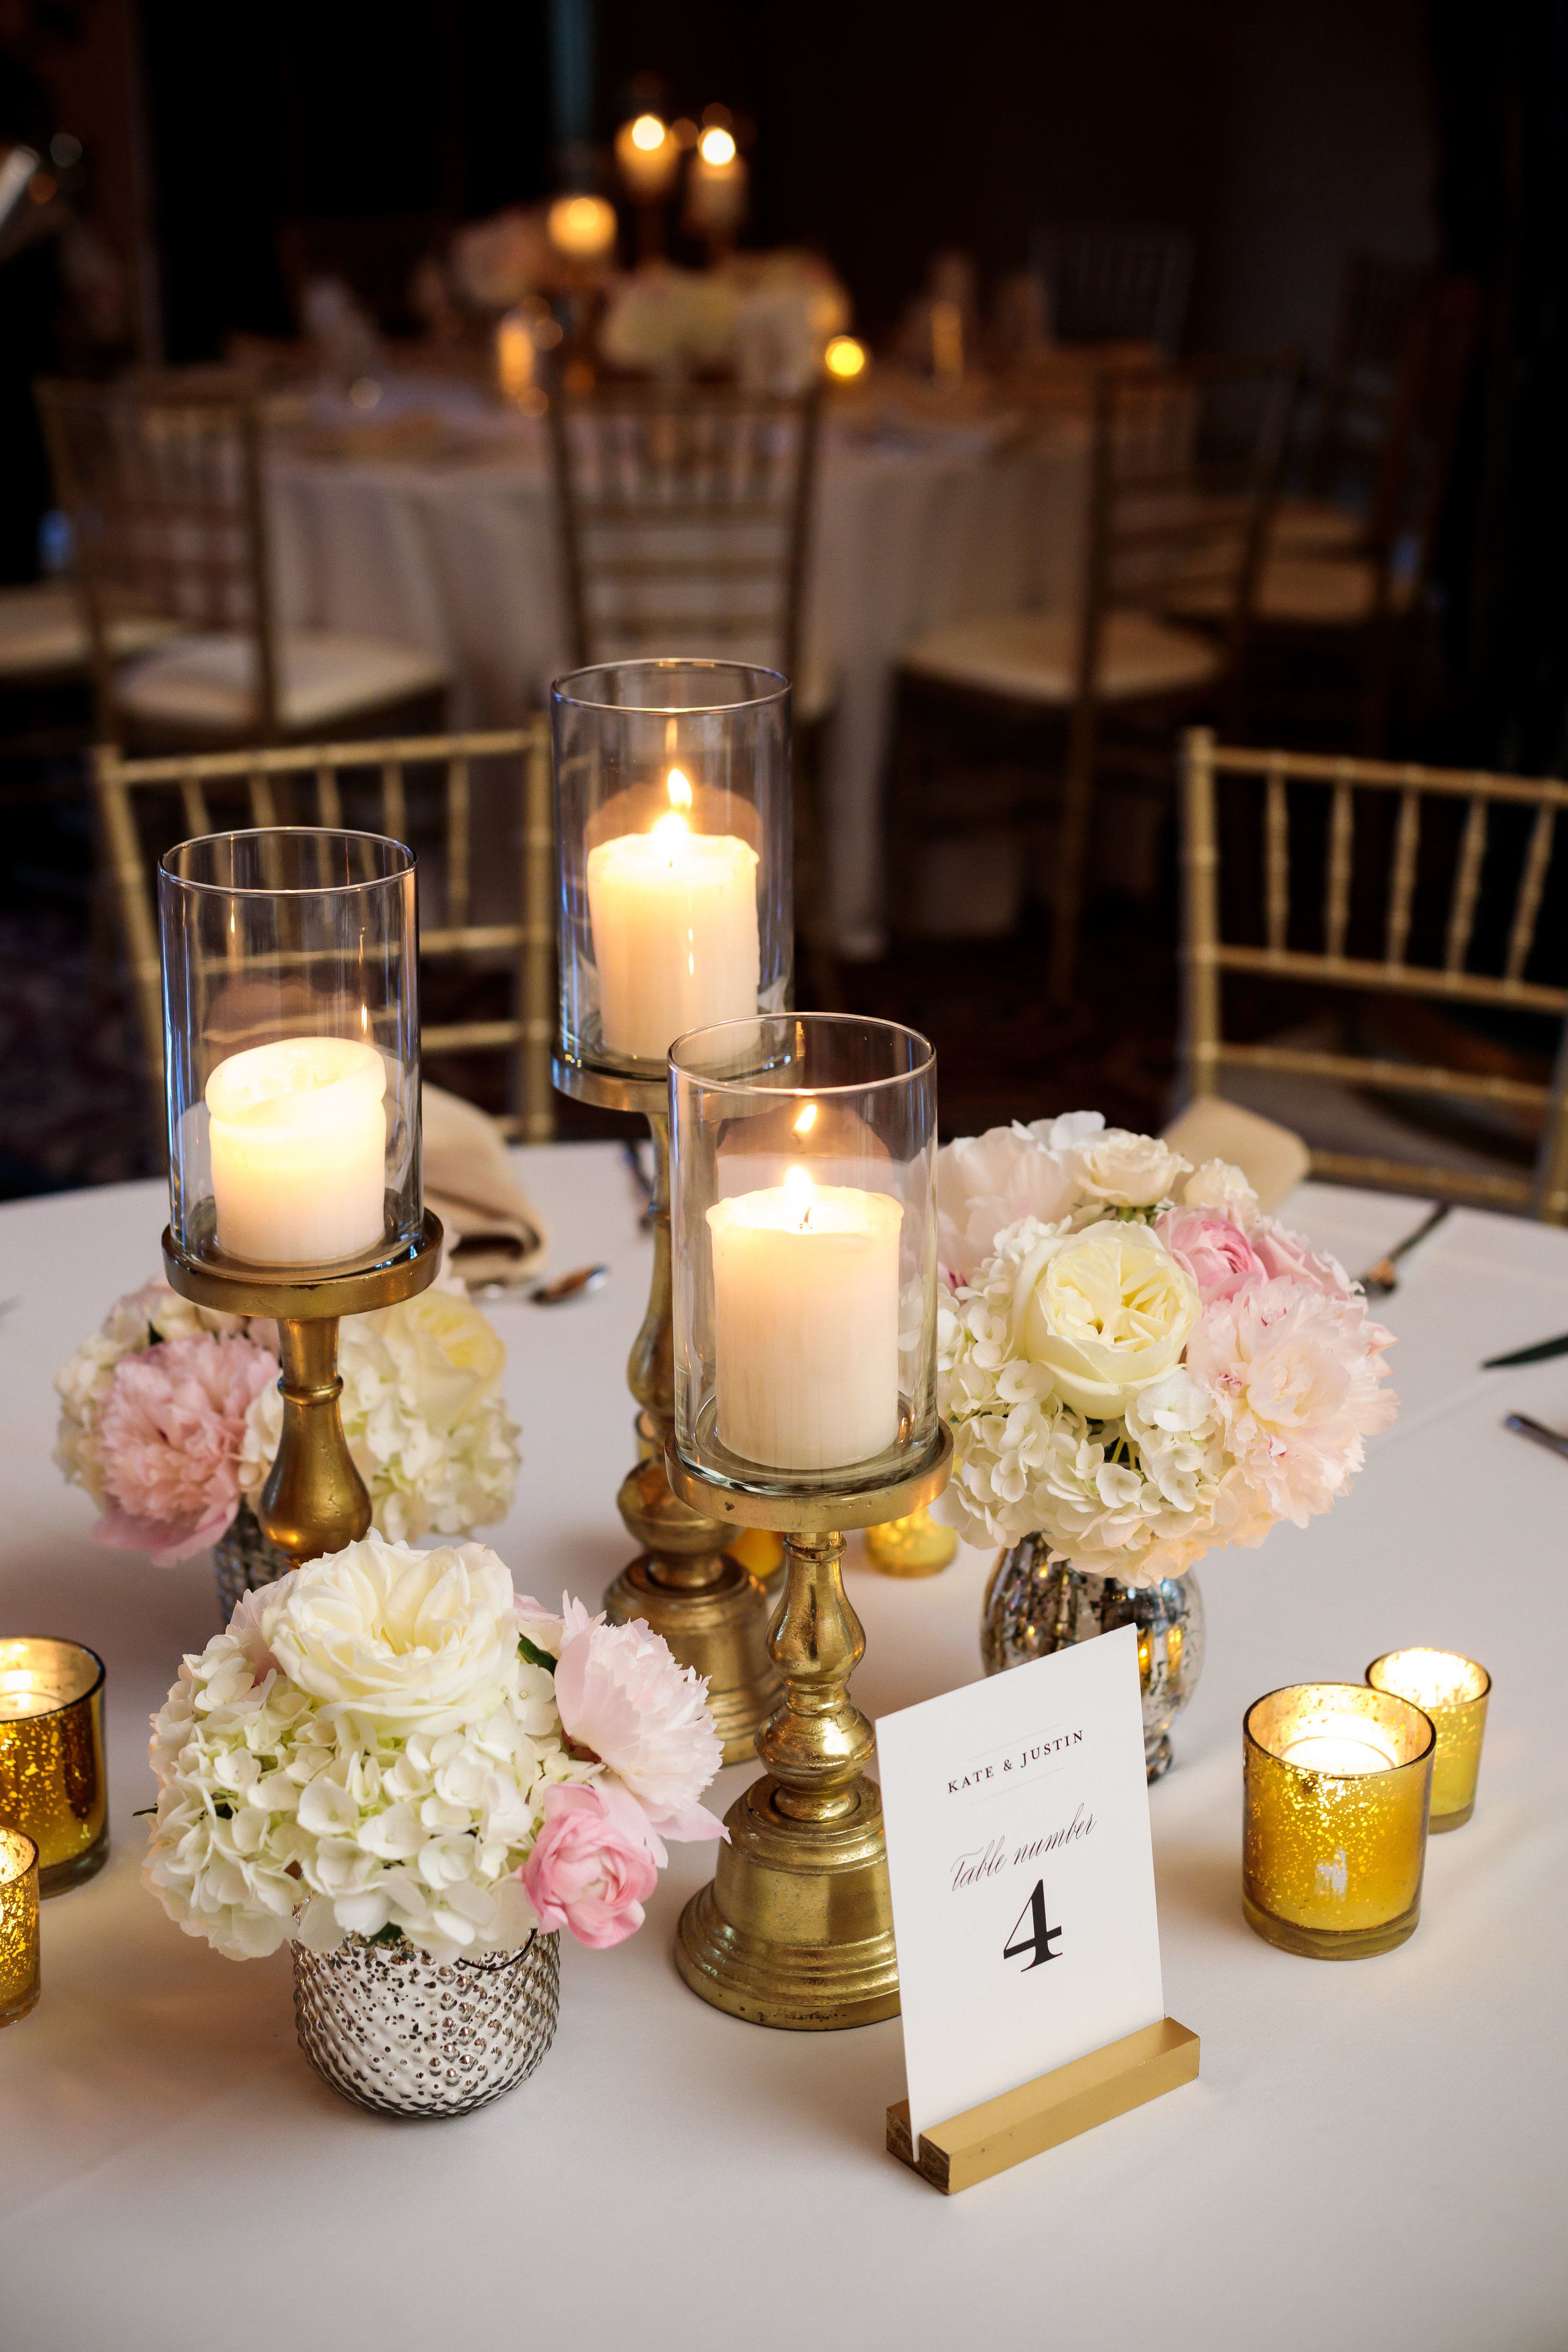 Pink and White Centerpieces  Candles  Wedding Reception Tablescape  School of the Art Institute  Planning by Wrap It Up Parties